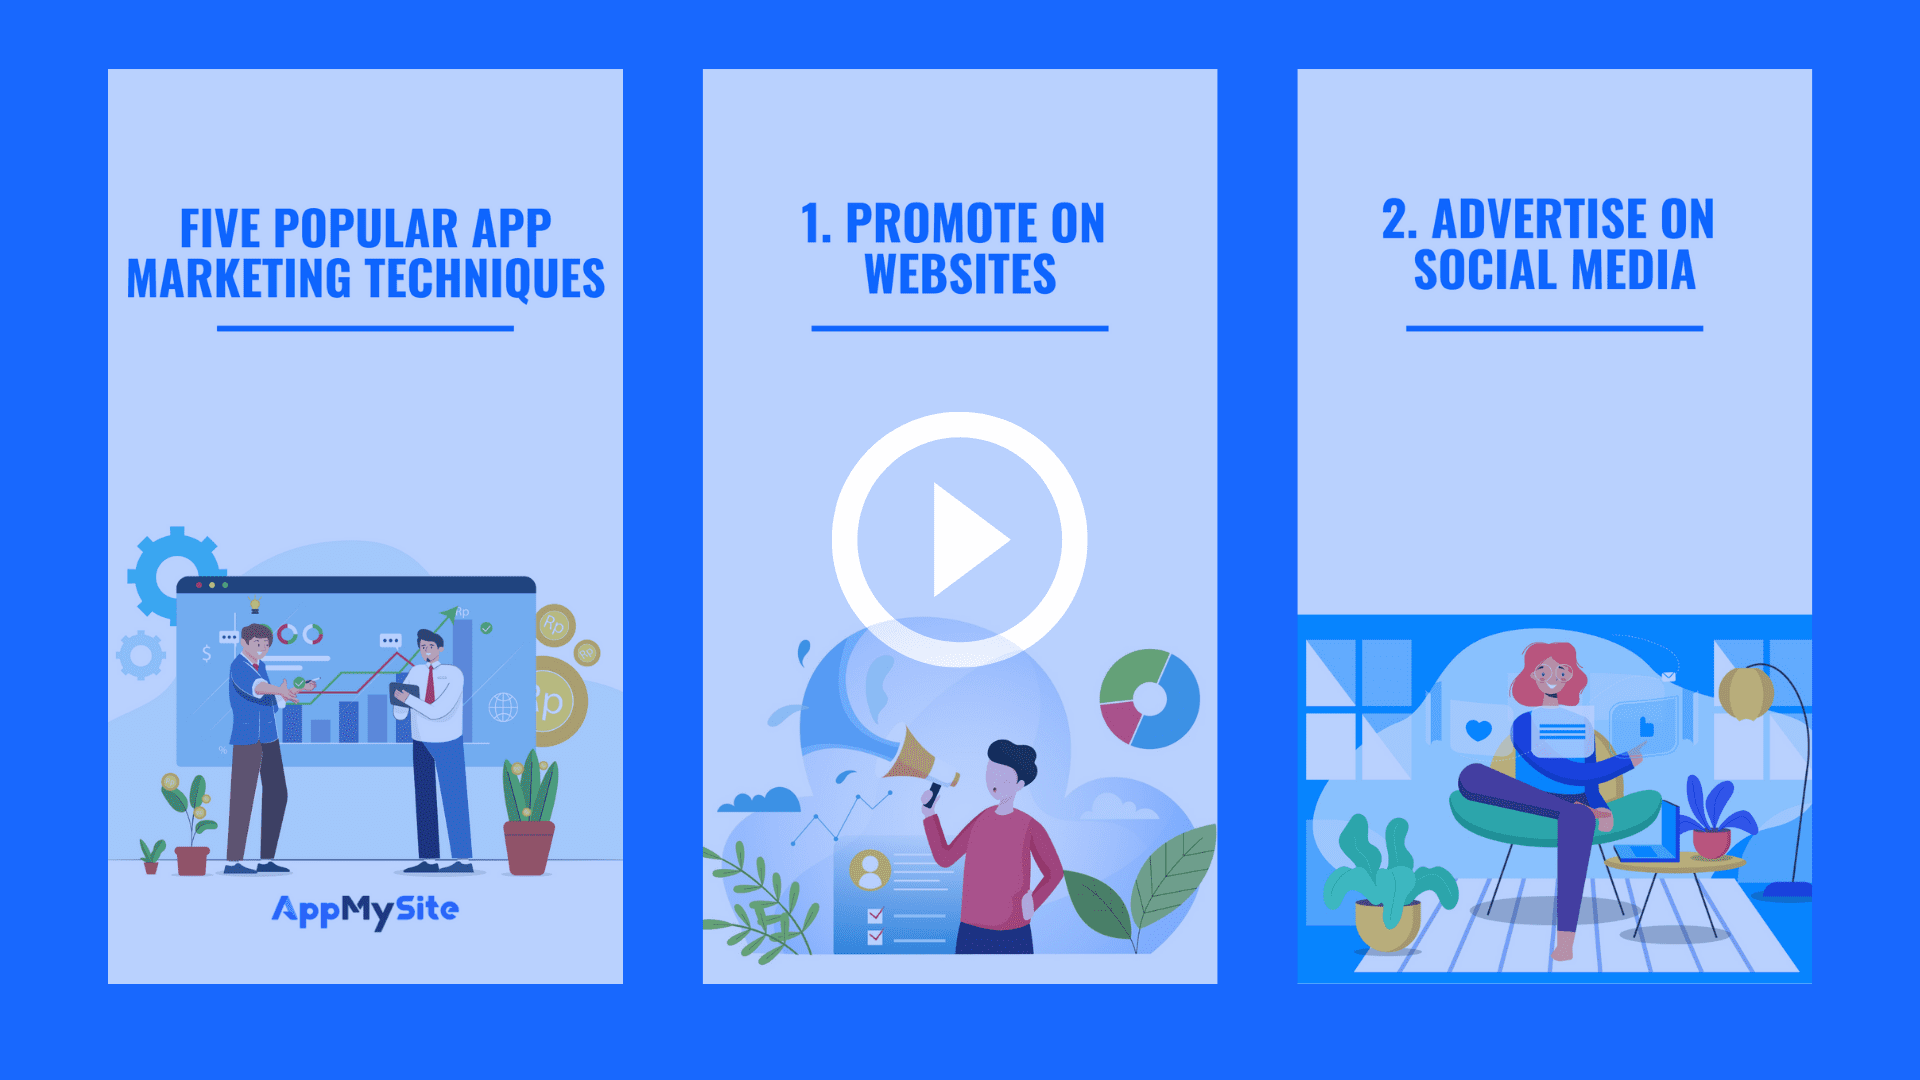 Techniques to promote your app